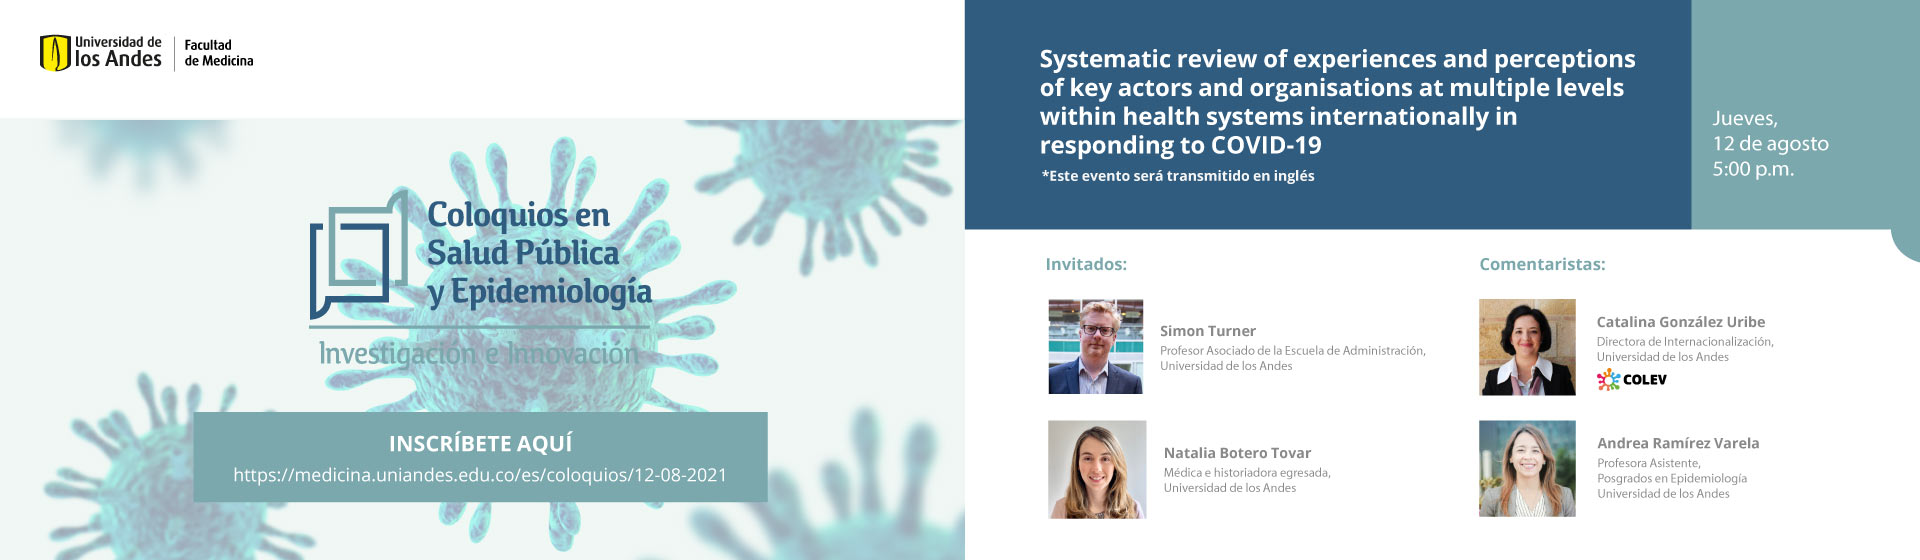 Systematic review of experiences and perceptions